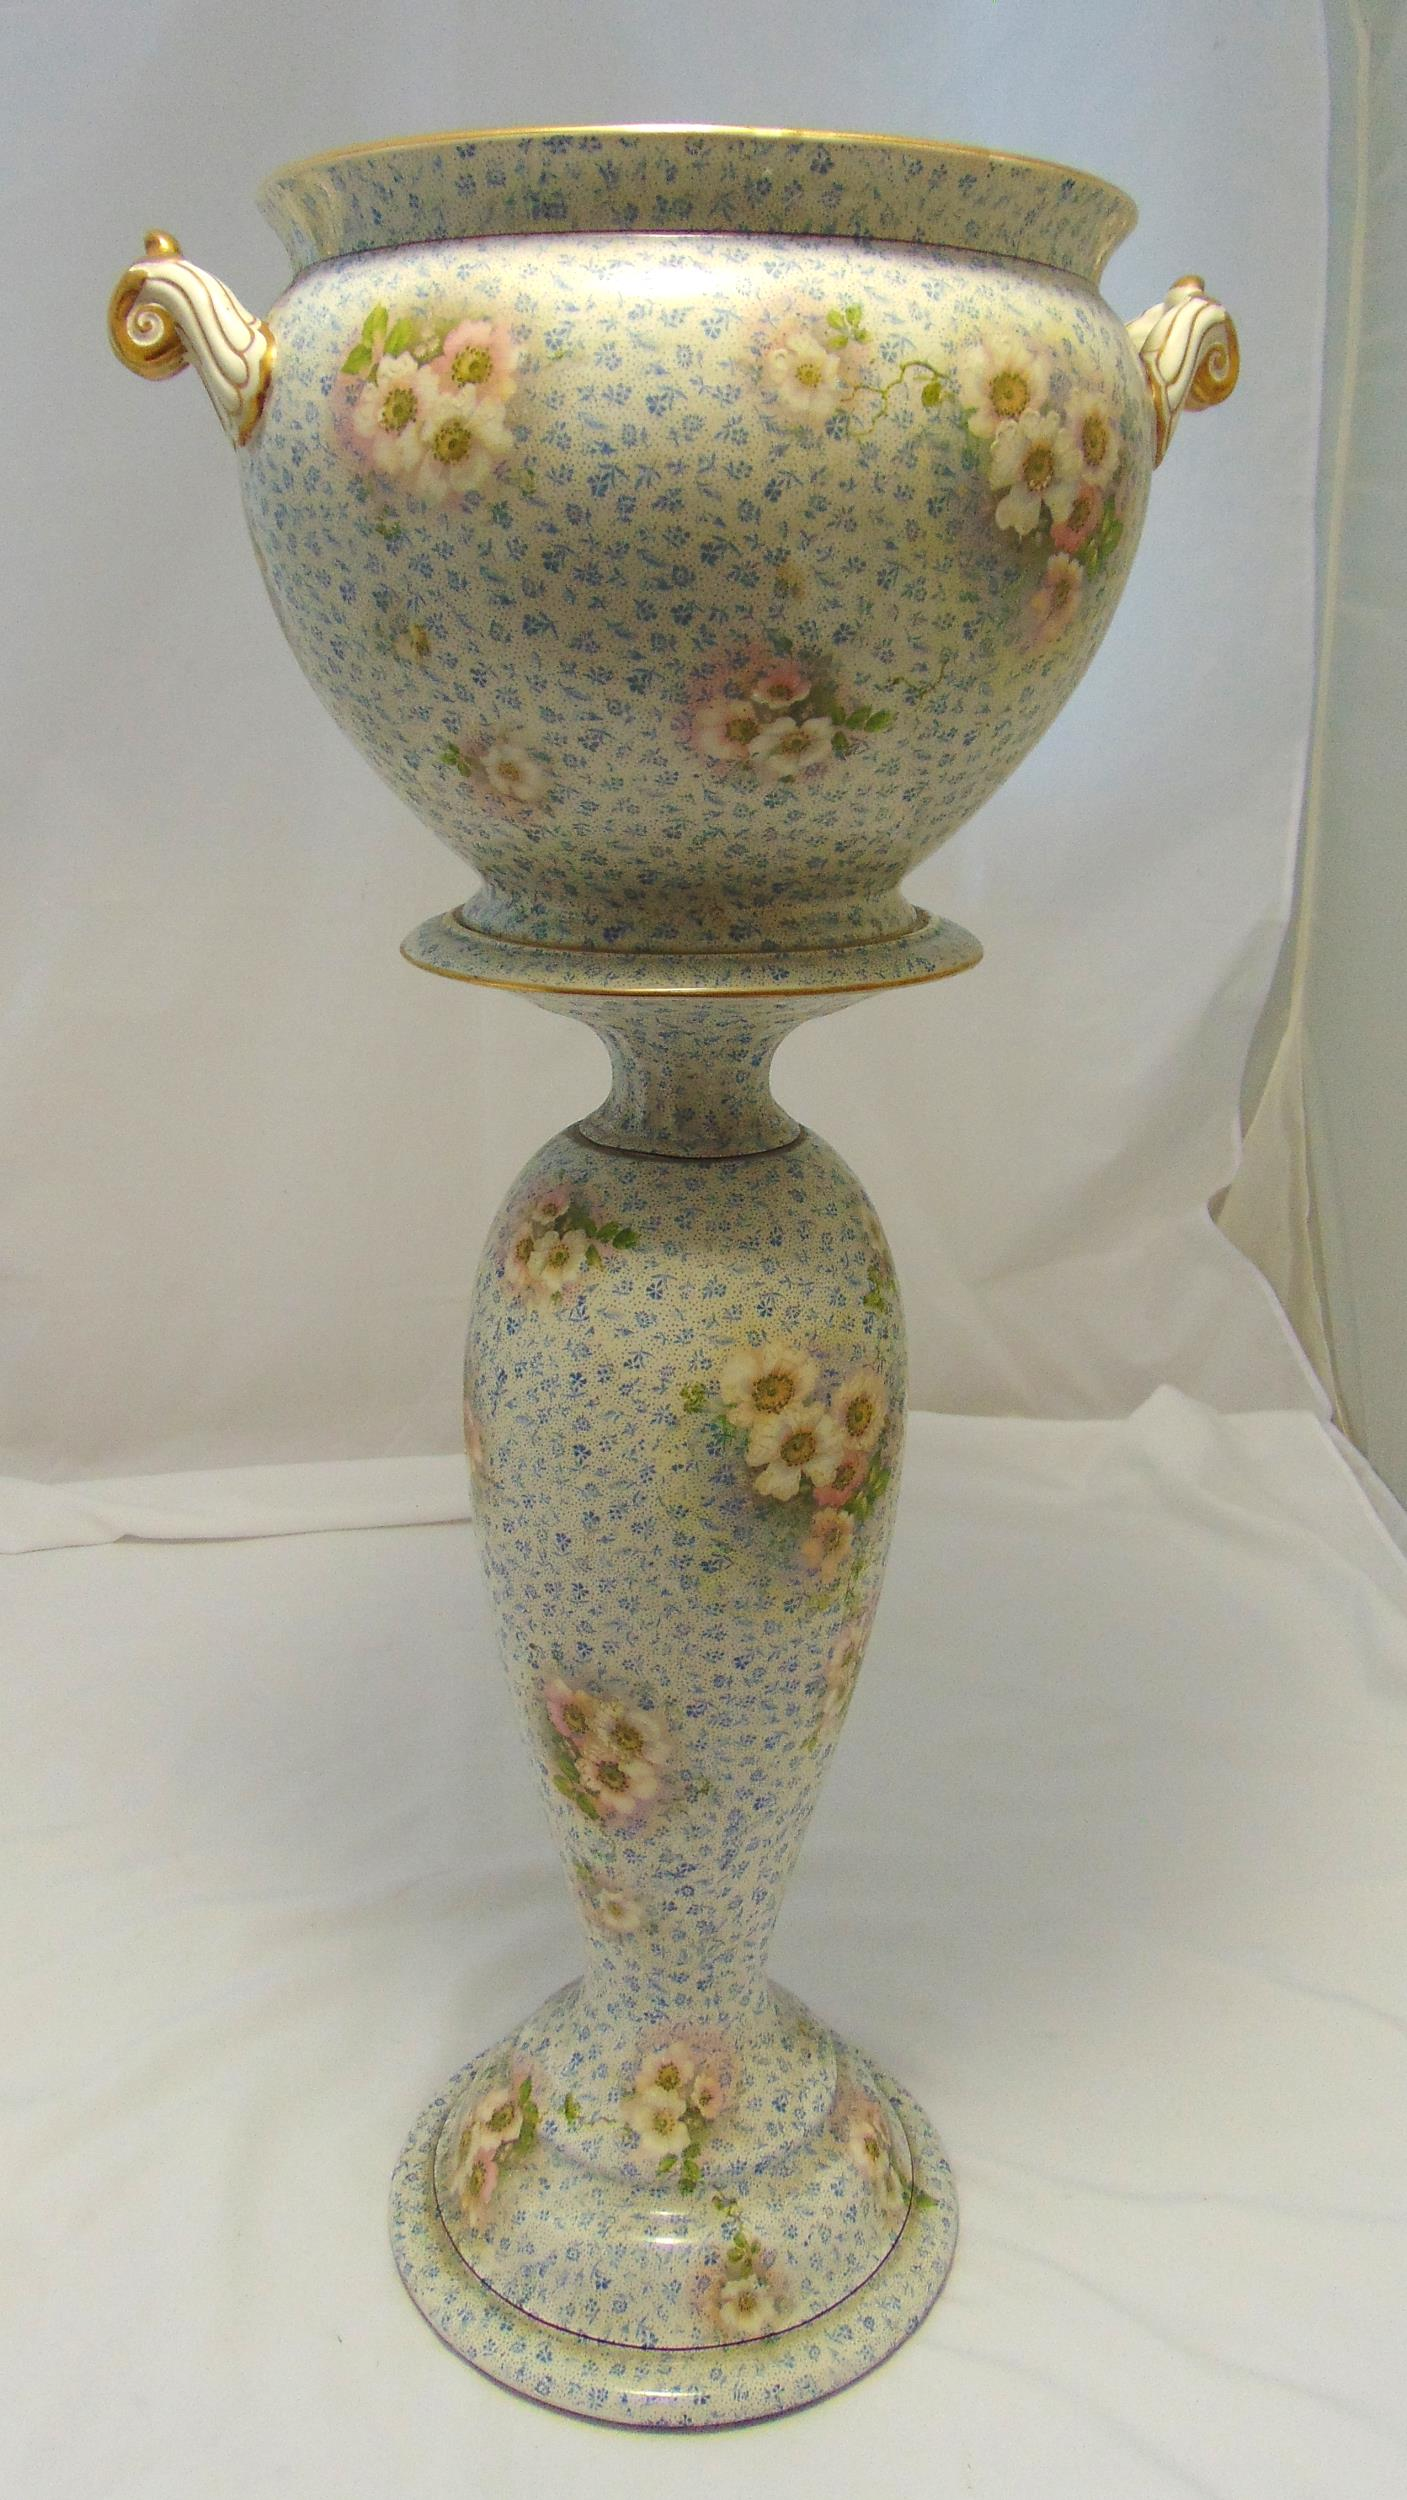 Royal Winton Grimswade early 20th century two handled jardiniŠre and stand decorated with floral